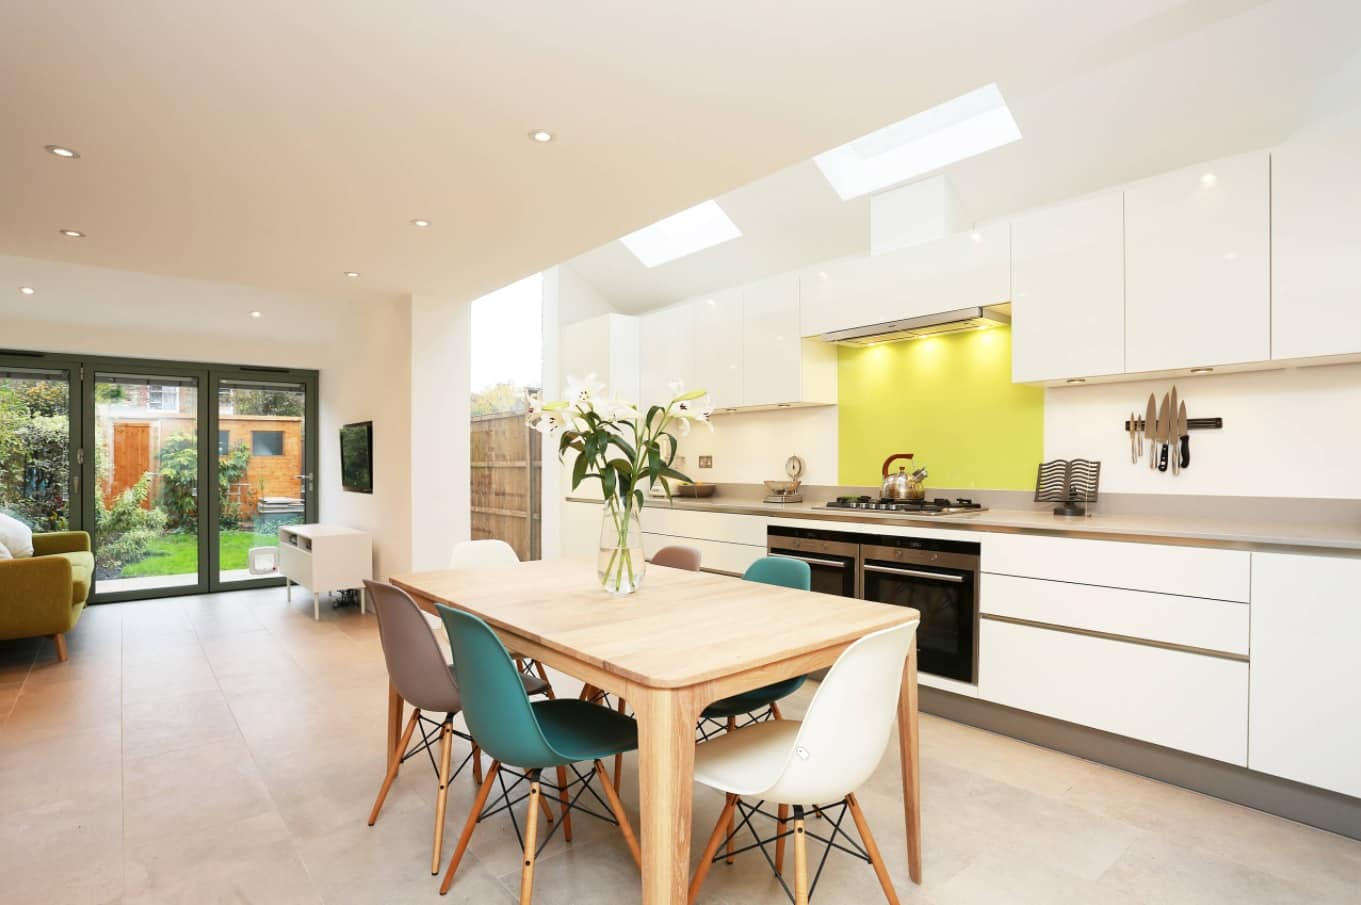 How to Make Your Kitchen Look more Expensive. Large minimalistic area with a dining zone, joyful yellow backsplash at the hob and full of light through skylights and LED fixtures